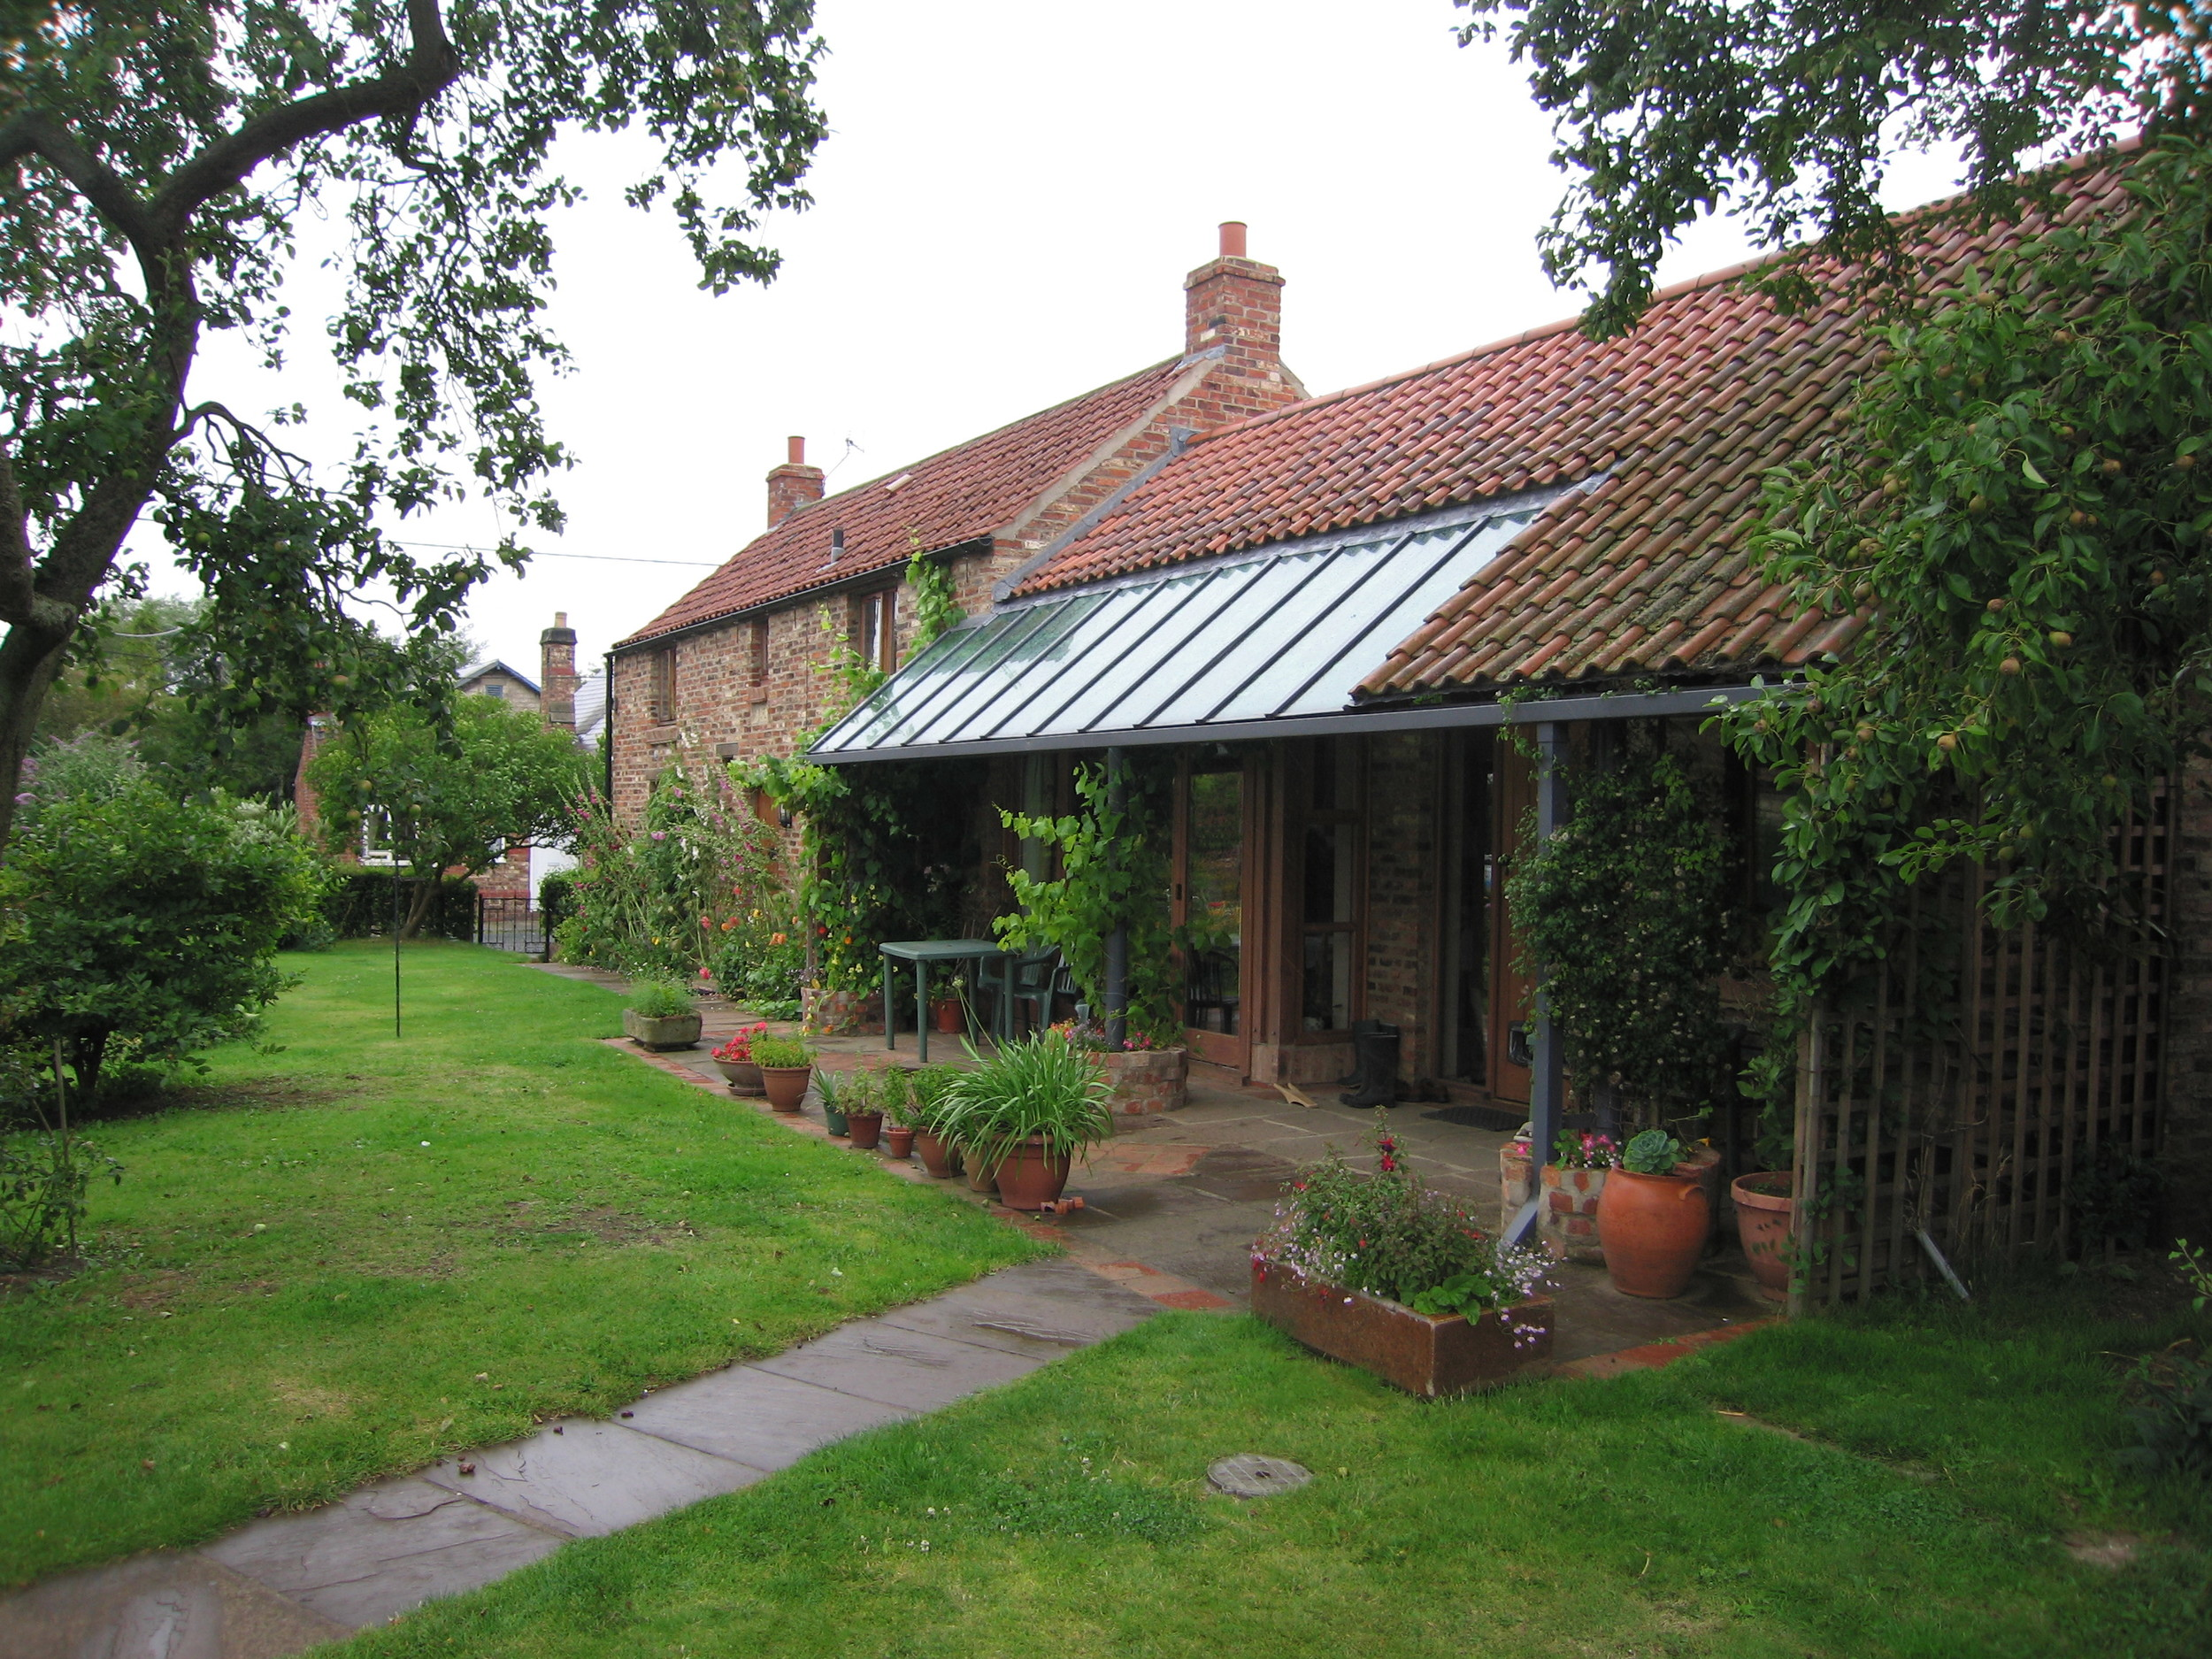 Original unsafe cottage re-built in a new position with extended spaces